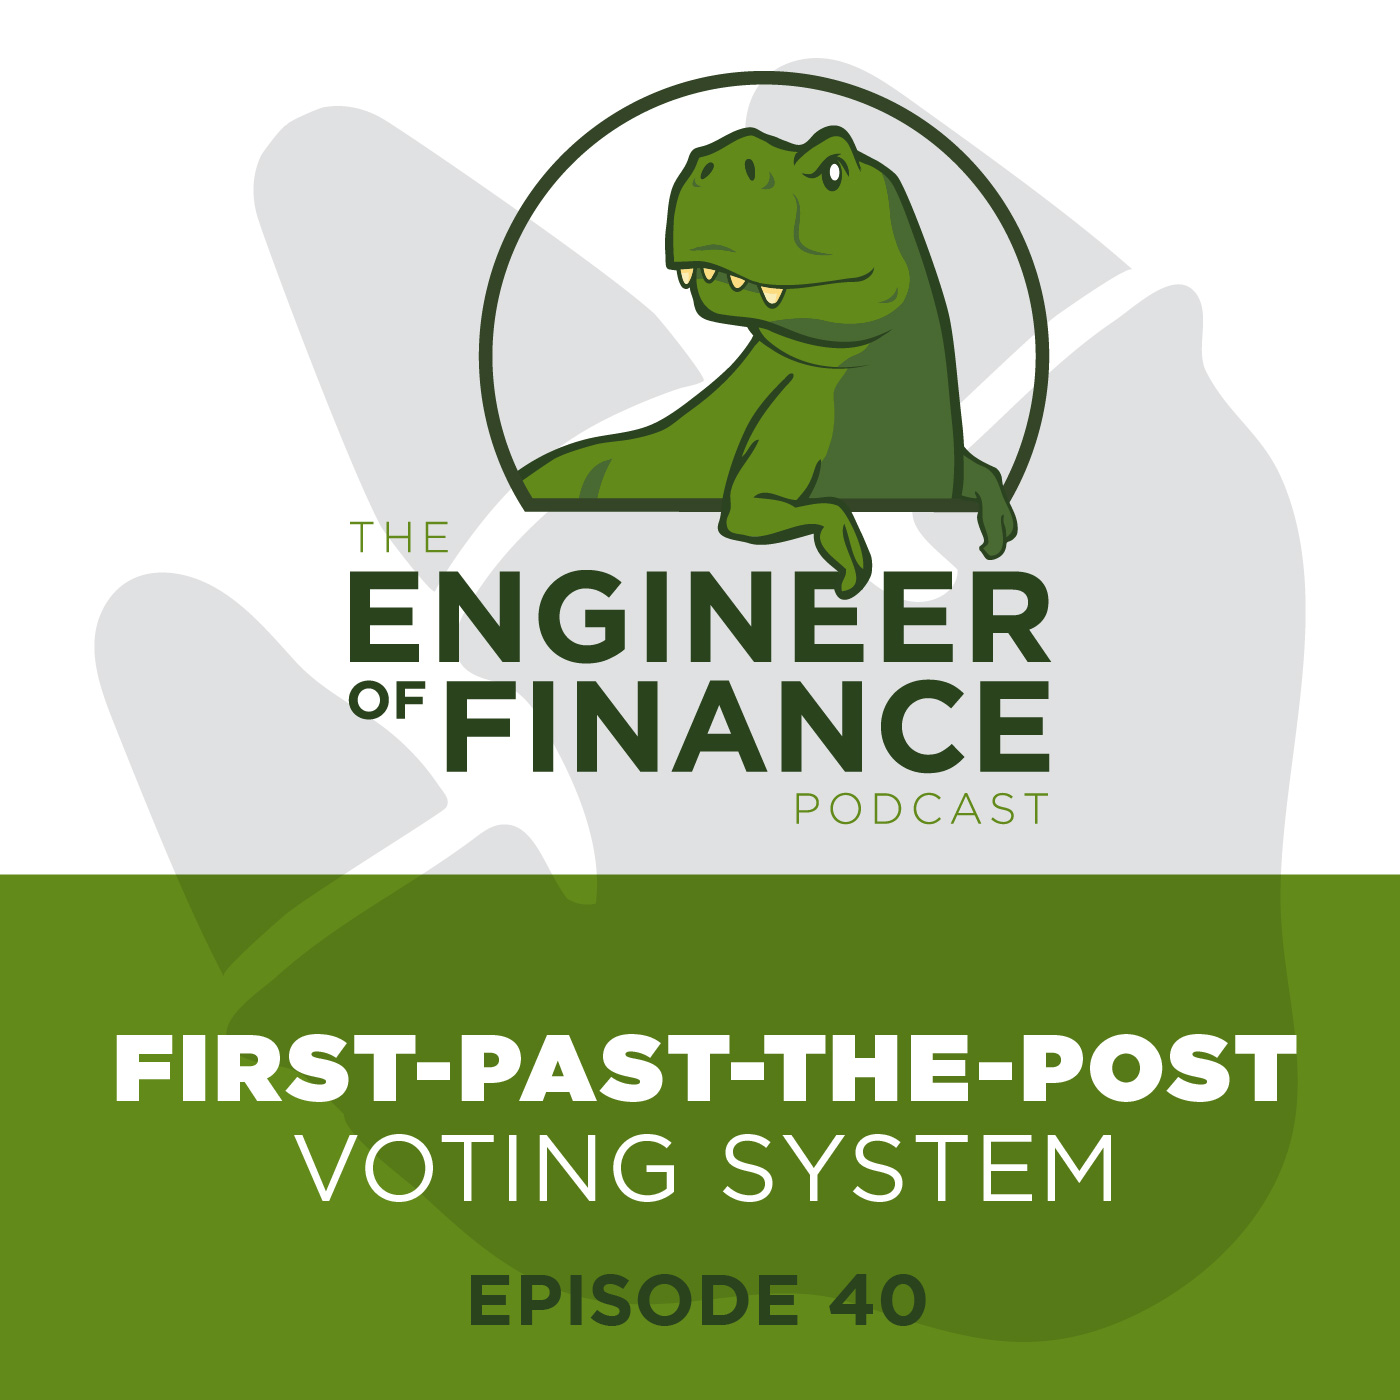 First-past-the-post Voting System – Episode 40